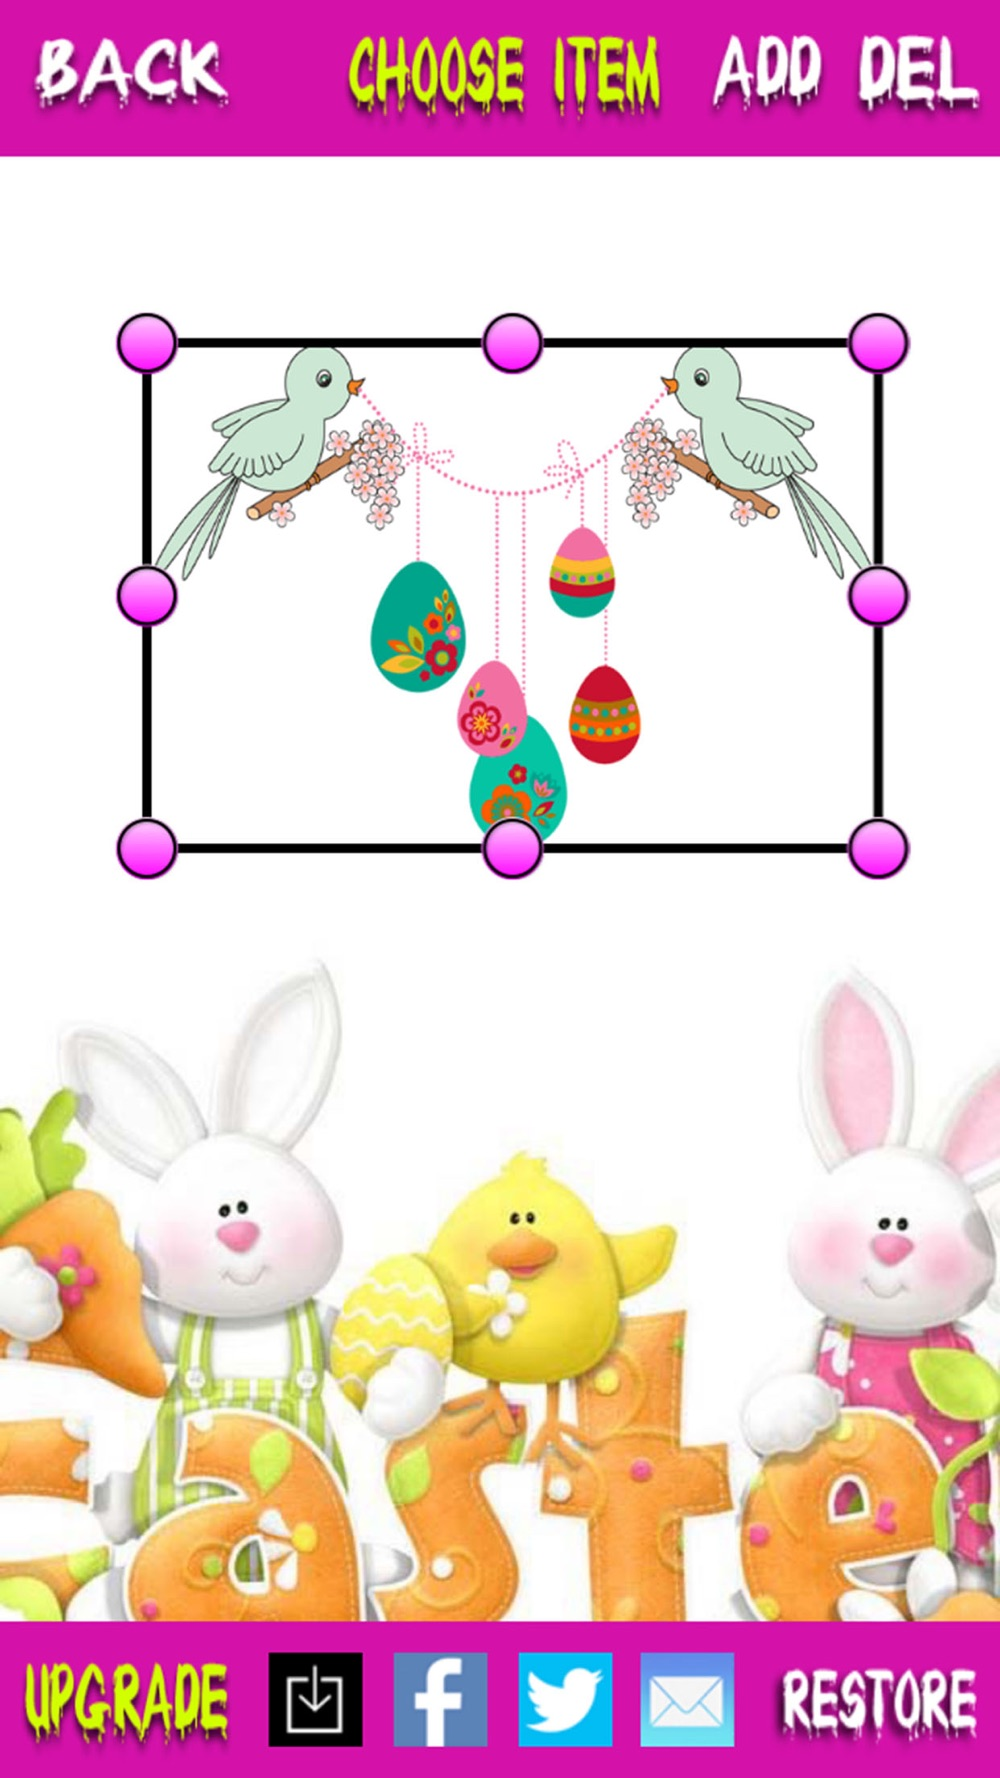 Hack tool for Happy Easter - Free Photo Editor and Greeting Card Maker